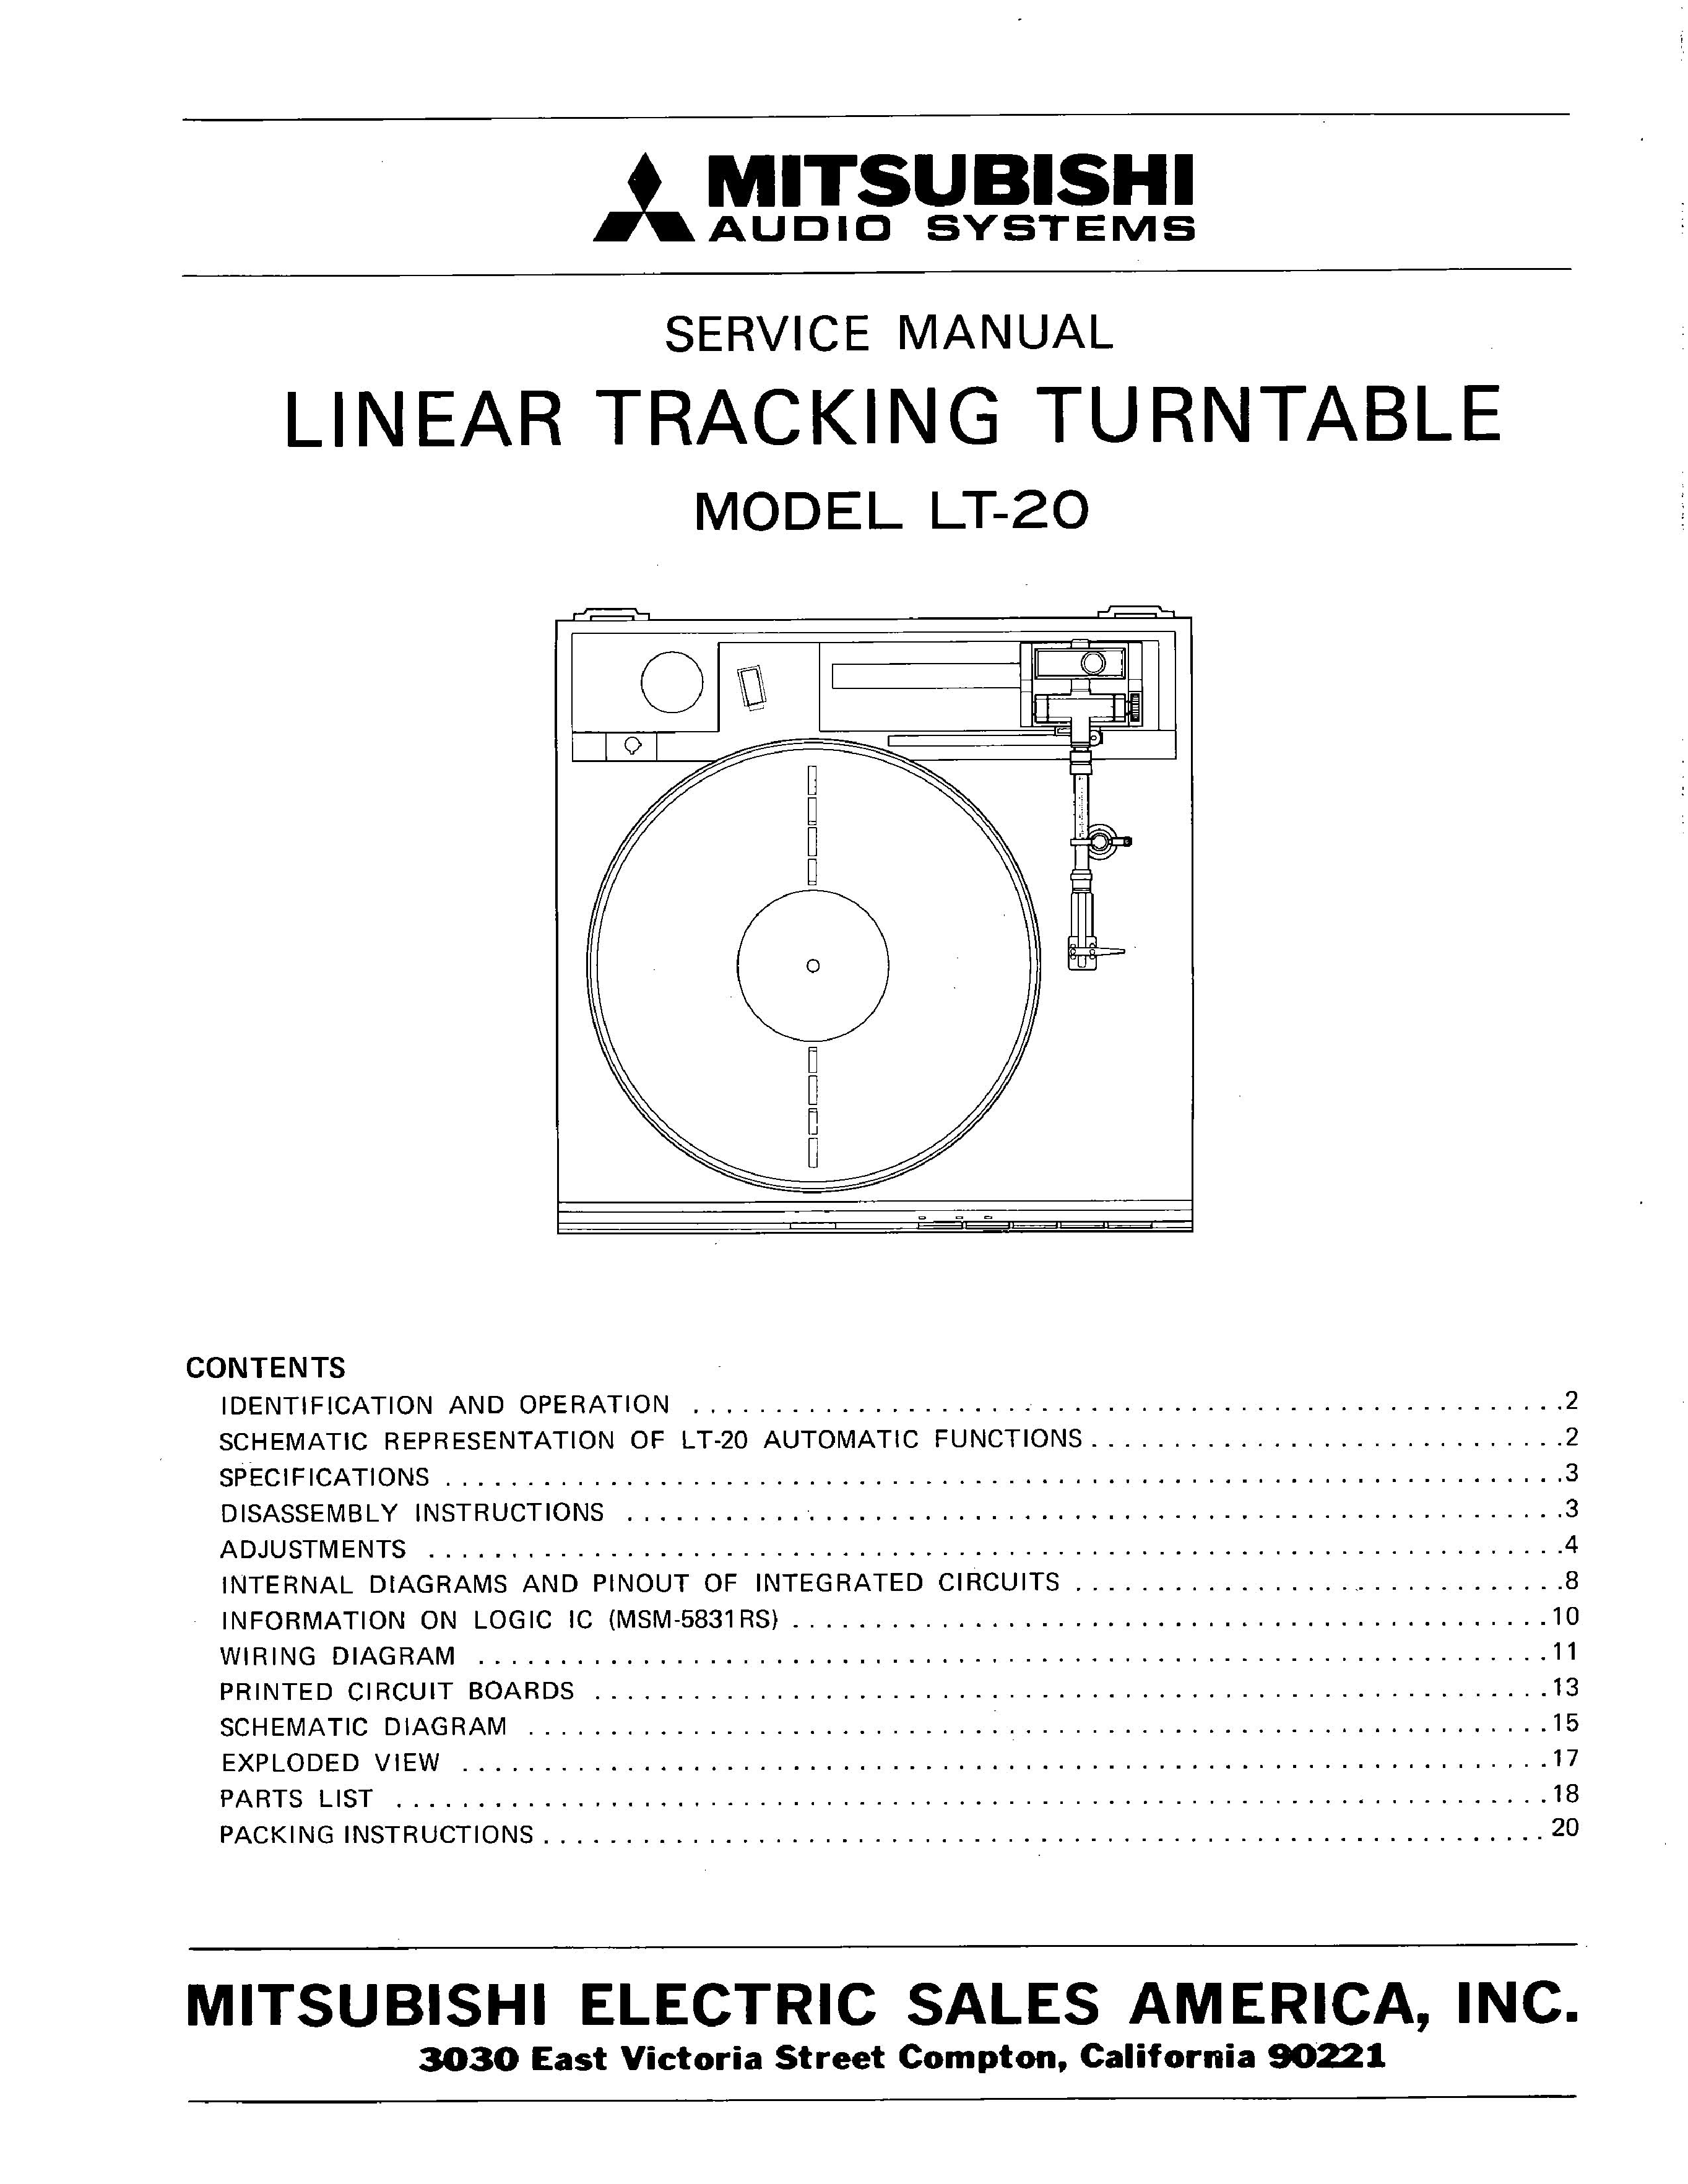 Mitsubishi Lt 20 Service Manual Immediate Download Turntable Wiring Diagram Background Image